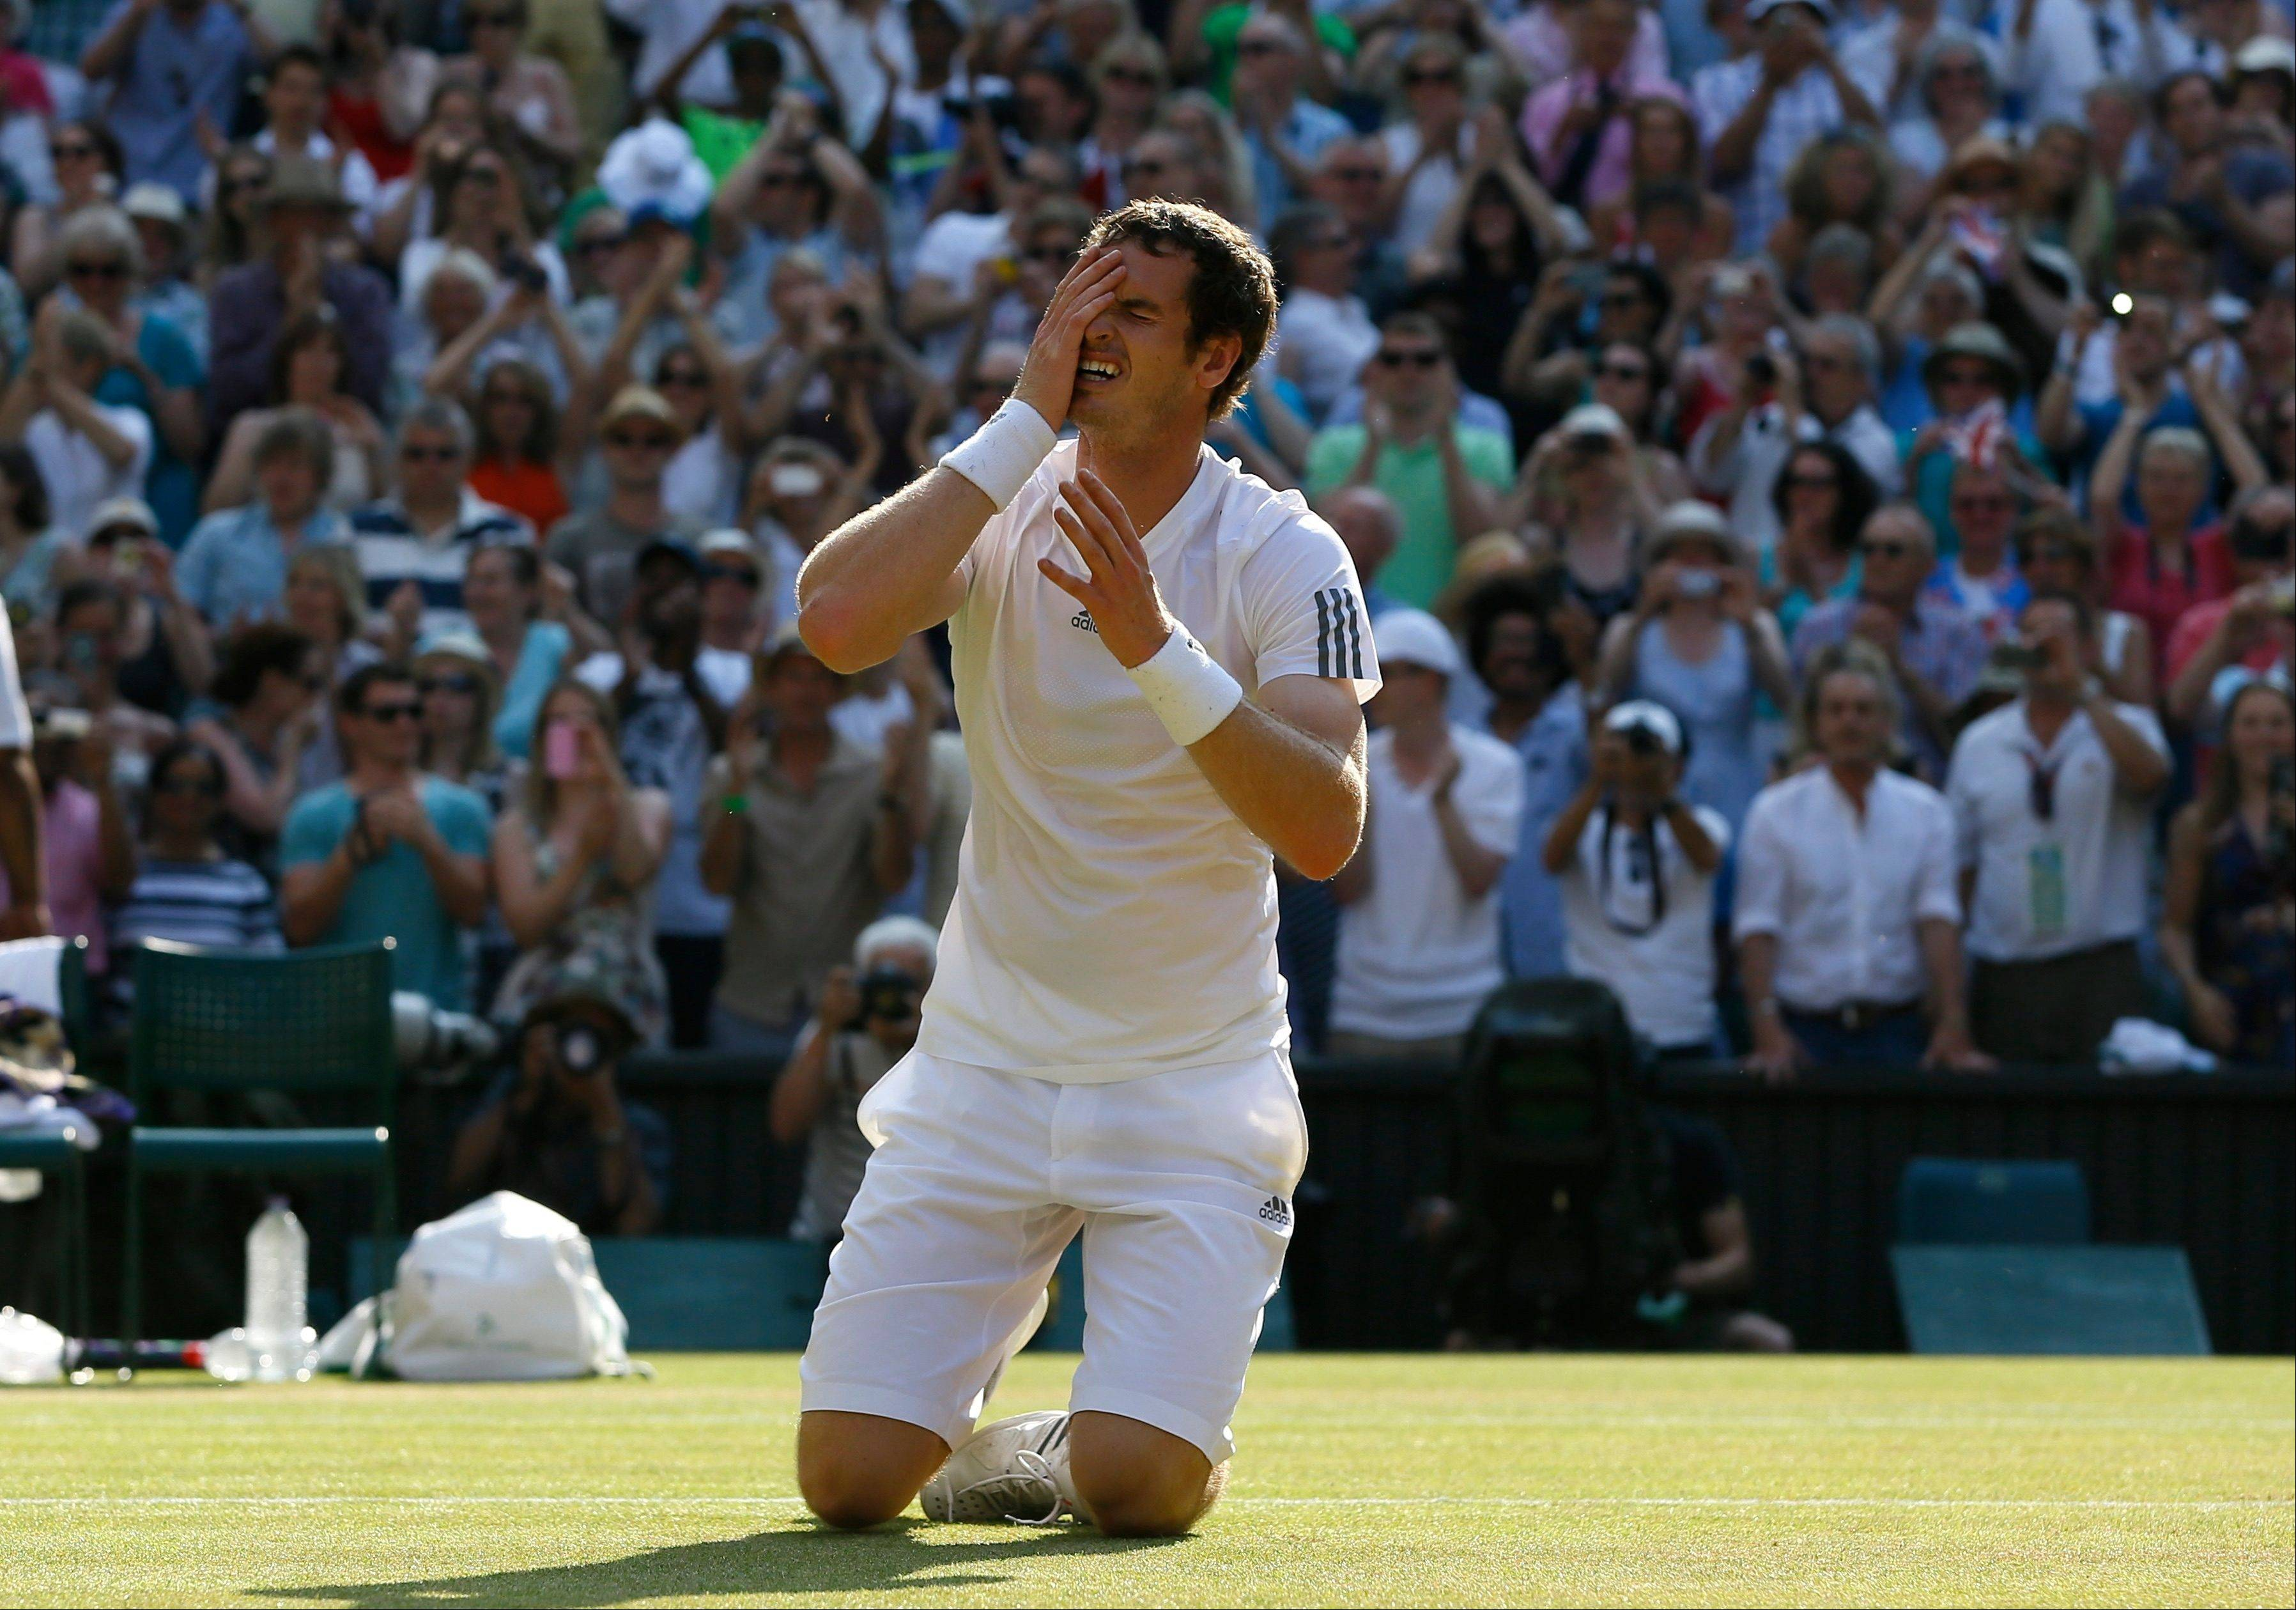 Andy Murray of Britain reacts after winning against Novak Djokovic of Serbia in the Men's singles final match at the All England Lawn Tennis Championships in Wimbledon, London, Sunday, July 7, 2013.